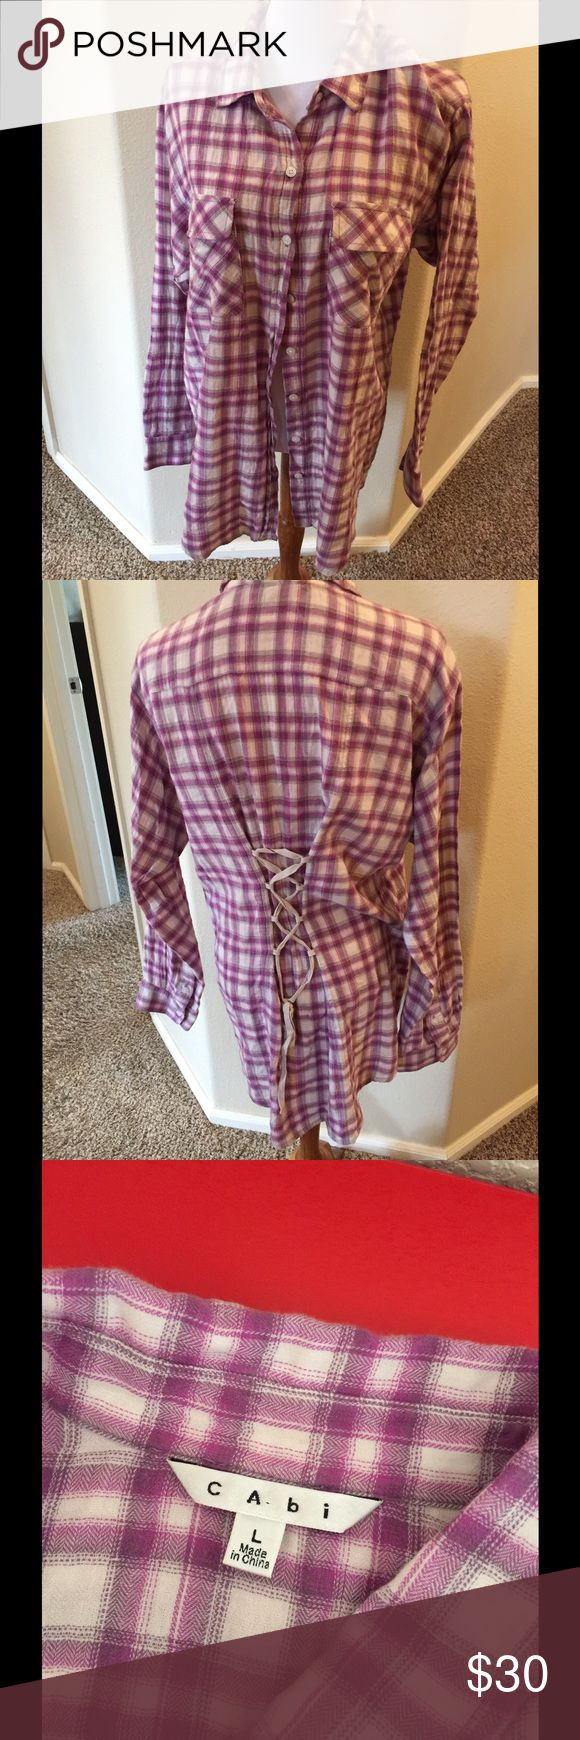 """Cabi purple /pink flannel L Cute long flannel shirt with tie back Bust 38"""" Length 29"""" center back CAbi Tops Button Down Shirts"""